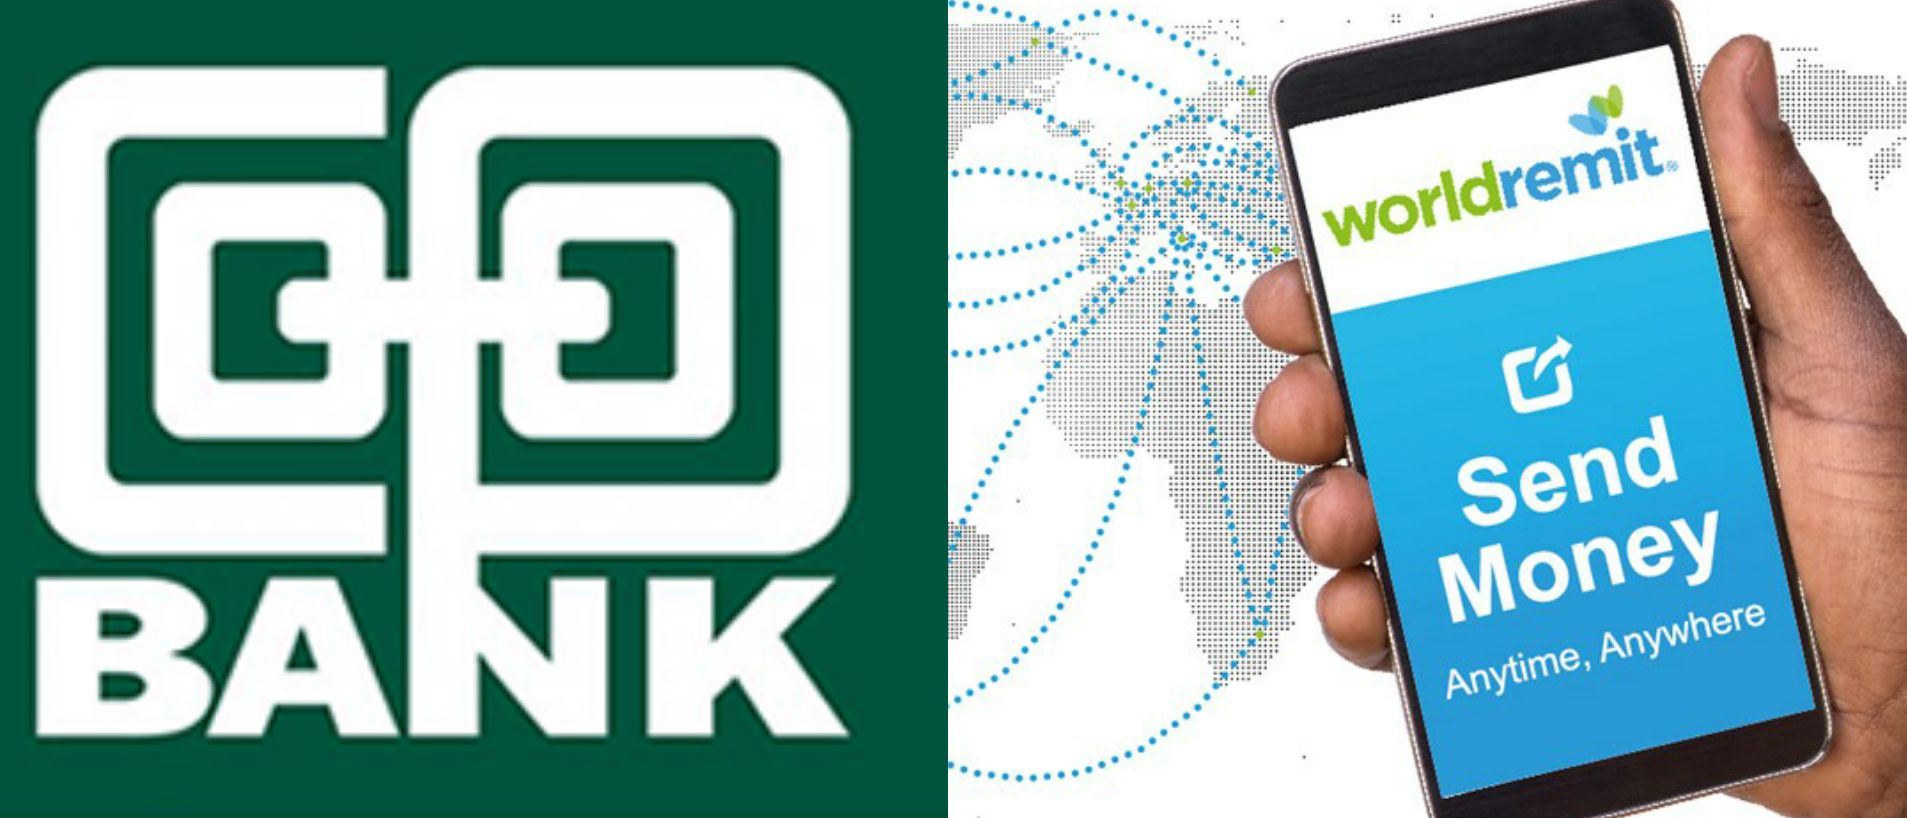 Co-op Bank partners with WorldRemit for quick digital money transfers to Kenya